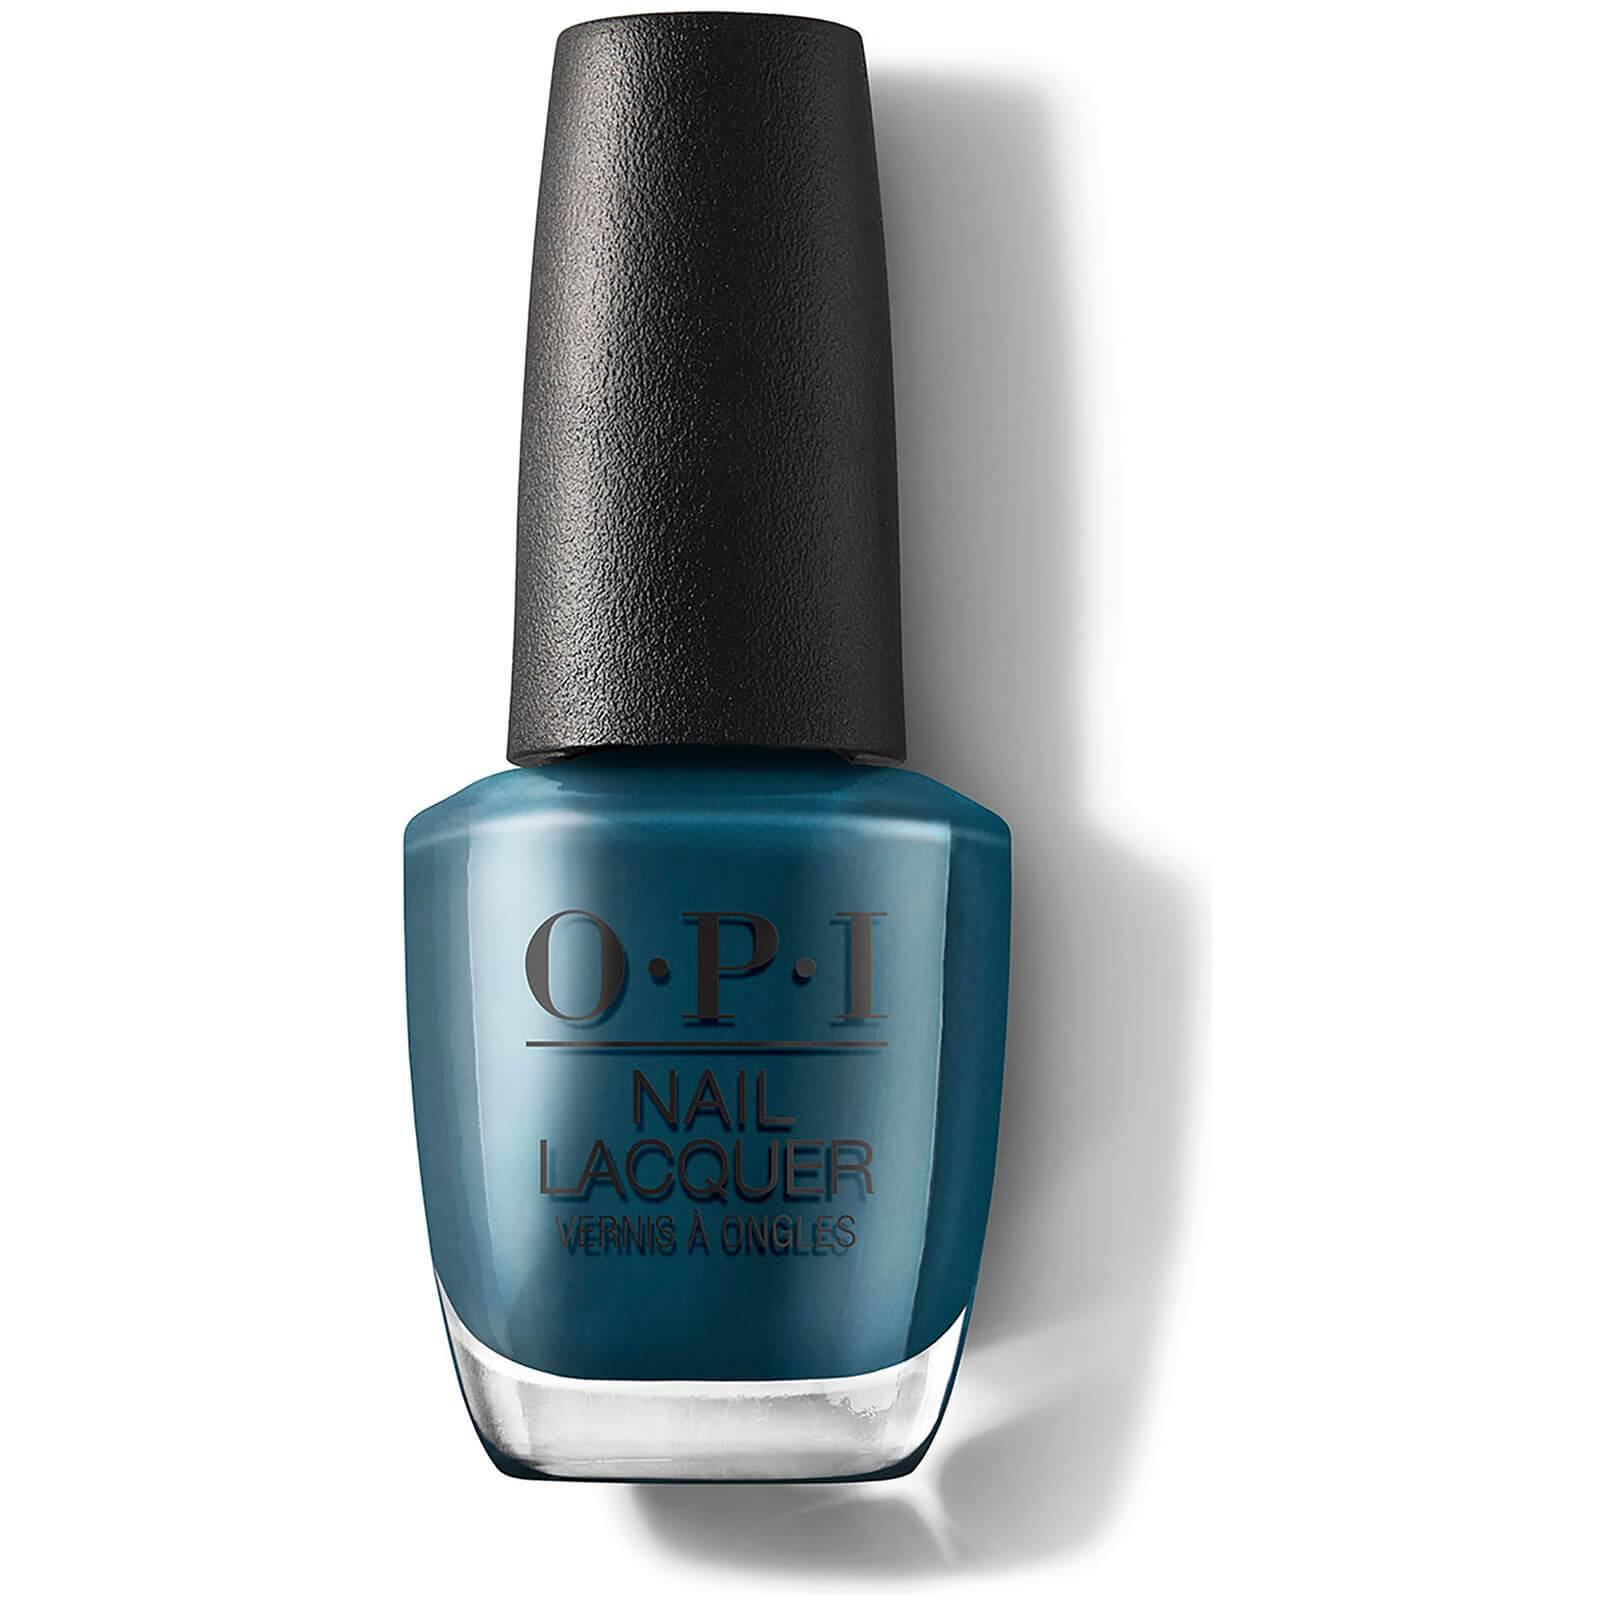 OPI OPI Nail Polish - Drama at La Scala NLMI04 - Fall 2020 Milan Collection Nail Polish - Mk Beauty Club